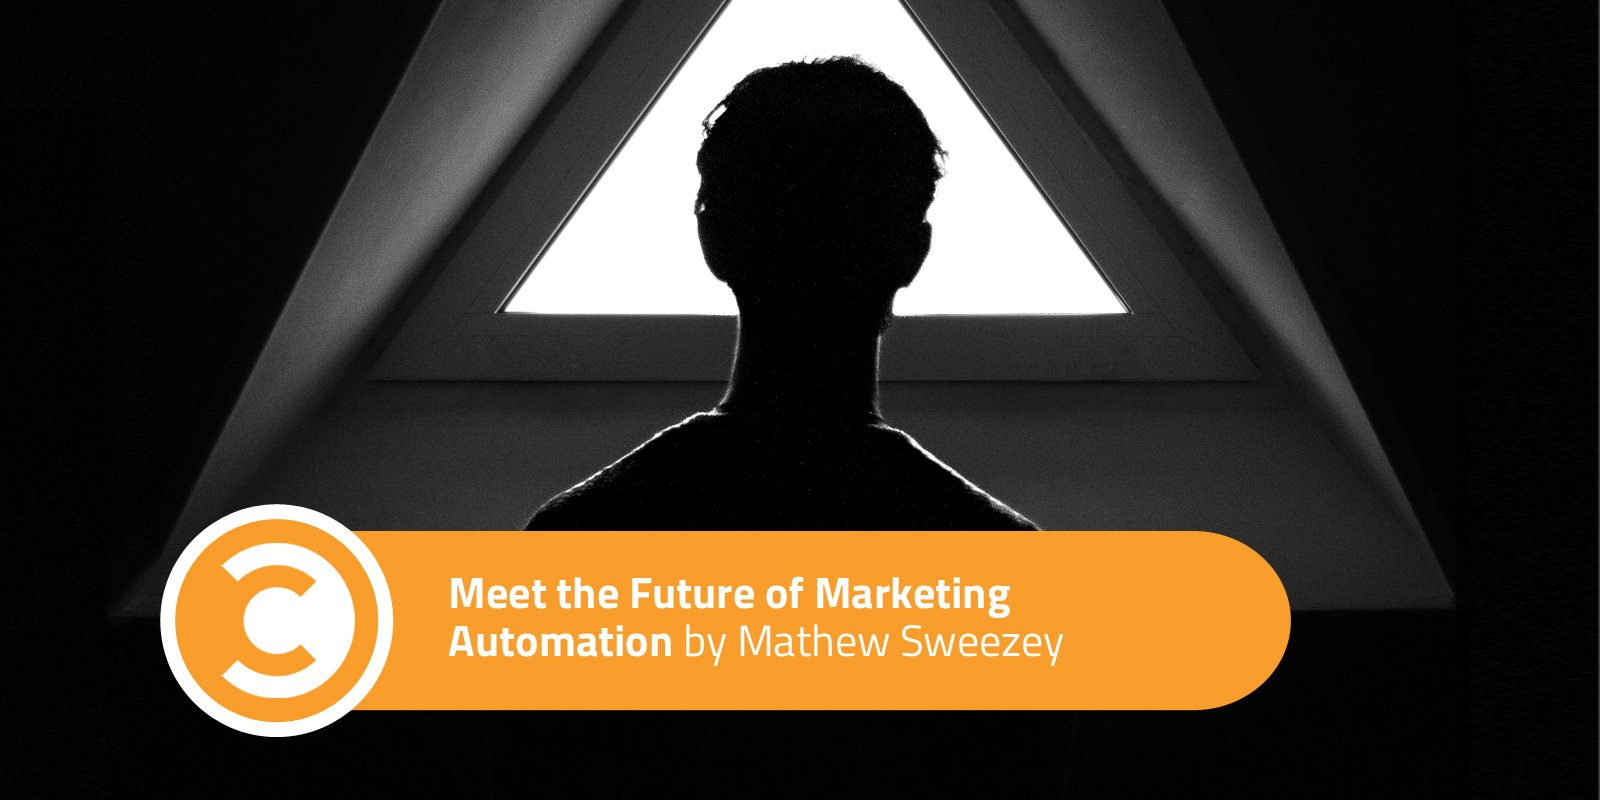 Meet the Future of Marketing Automation